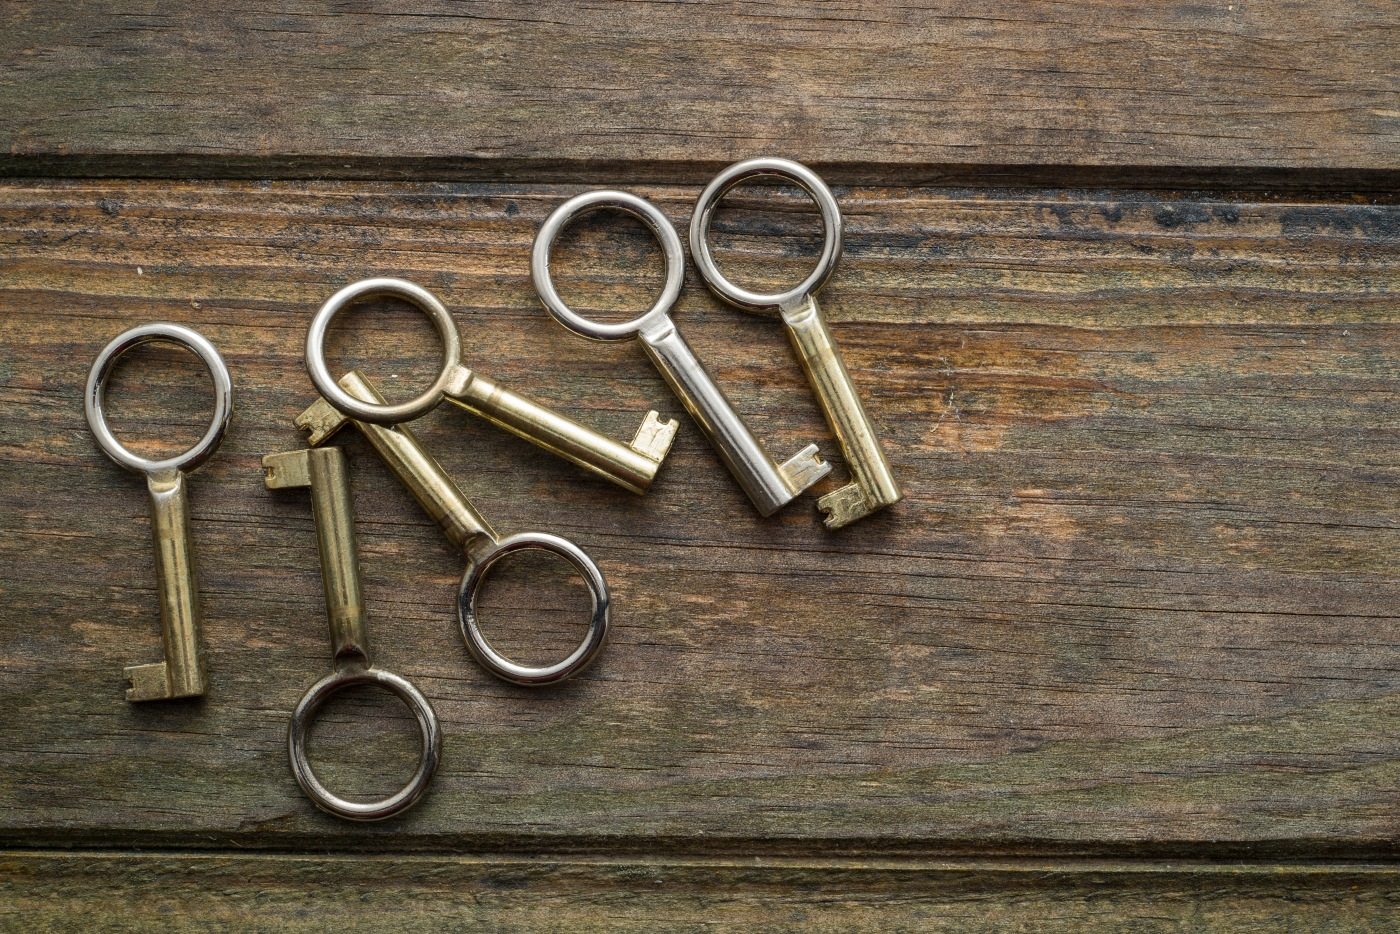 Six golden keys on a wooden background. Copy space